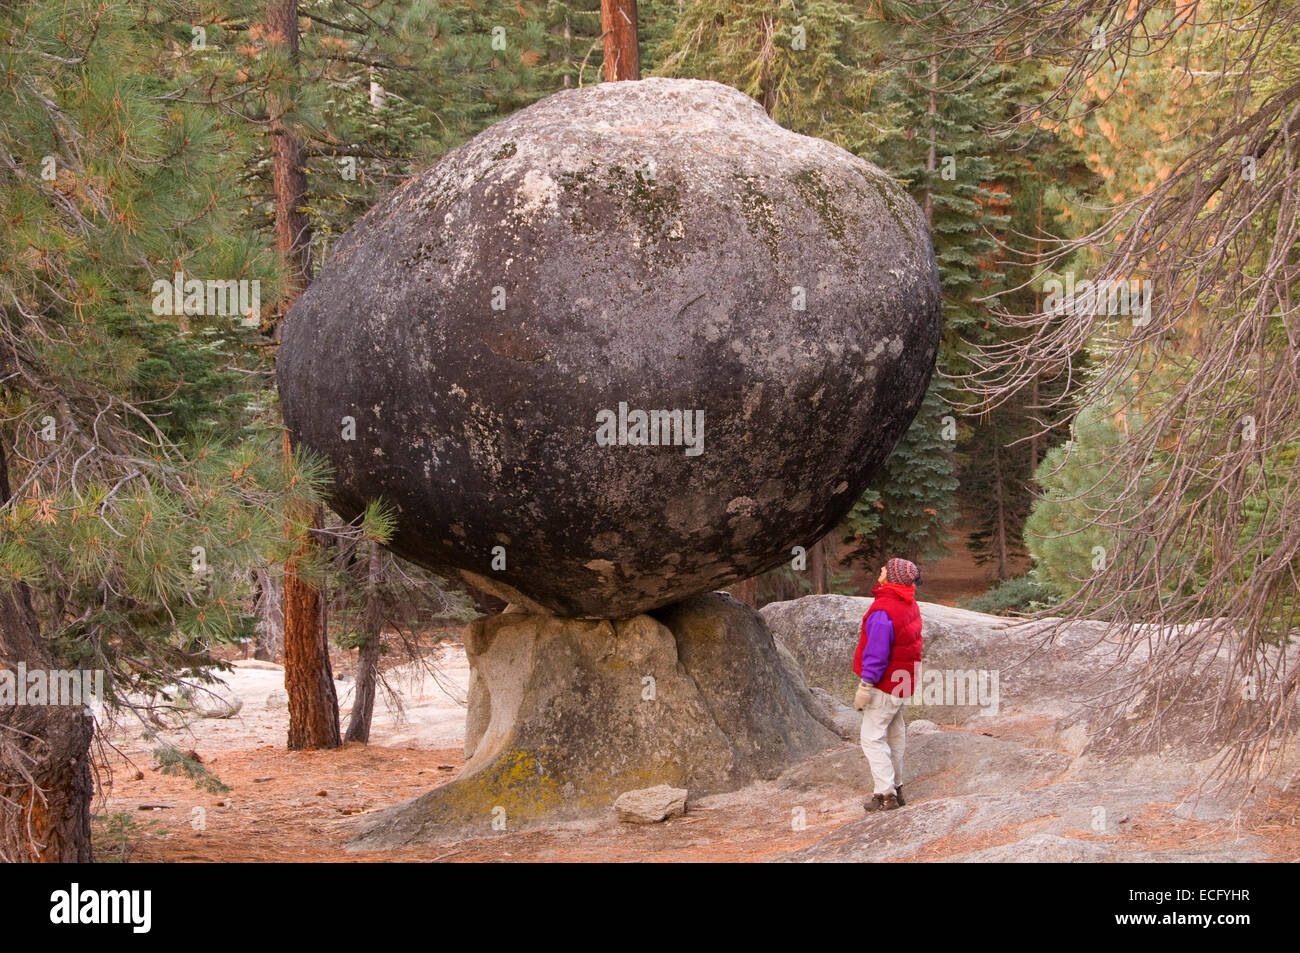 Globe Rock, Sierra Vista National Scenic Byway, Sierra National Forest, CaliforniaStock Photo